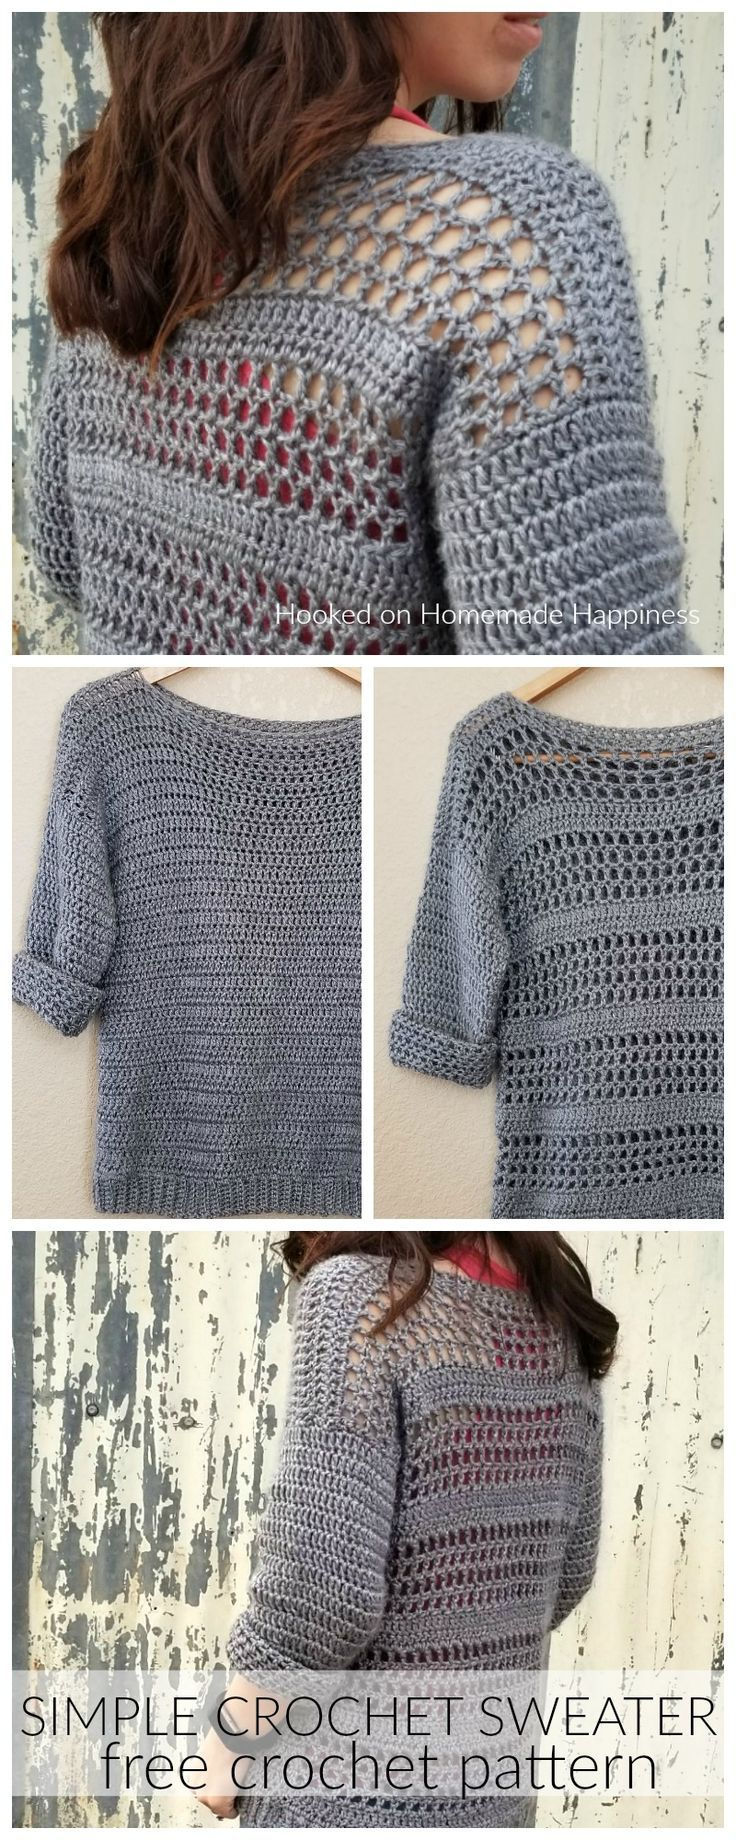 Simple Crochet Sweater Pattern #crochetedsweaters